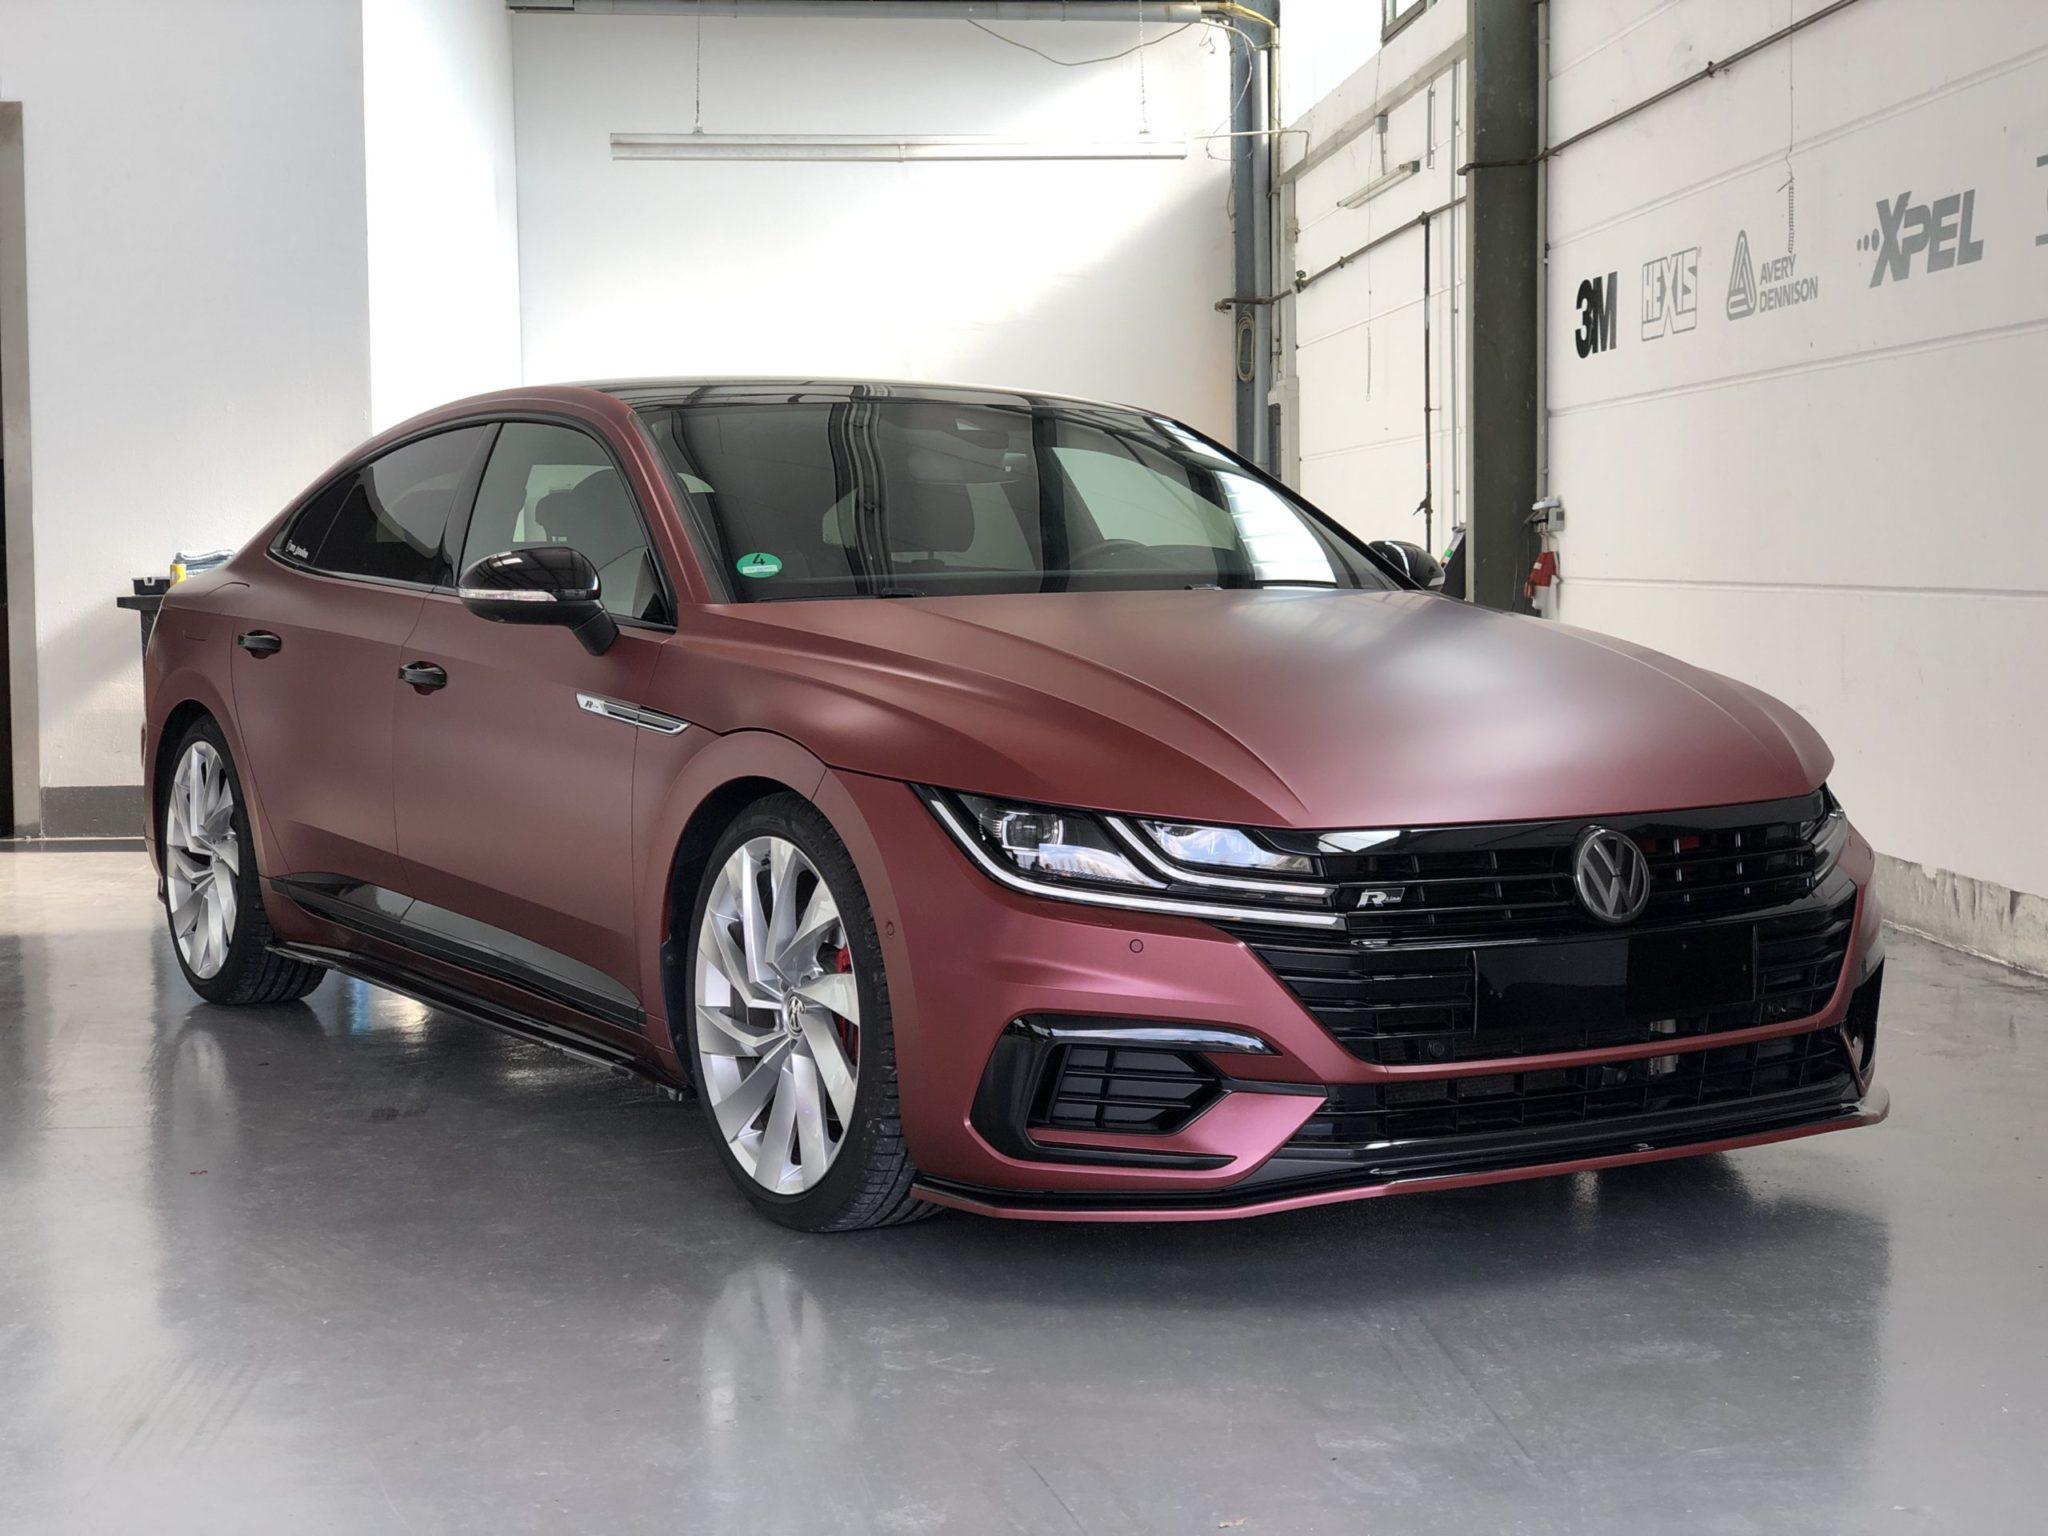 VW Arteon Oracal Rot Braun Metallic